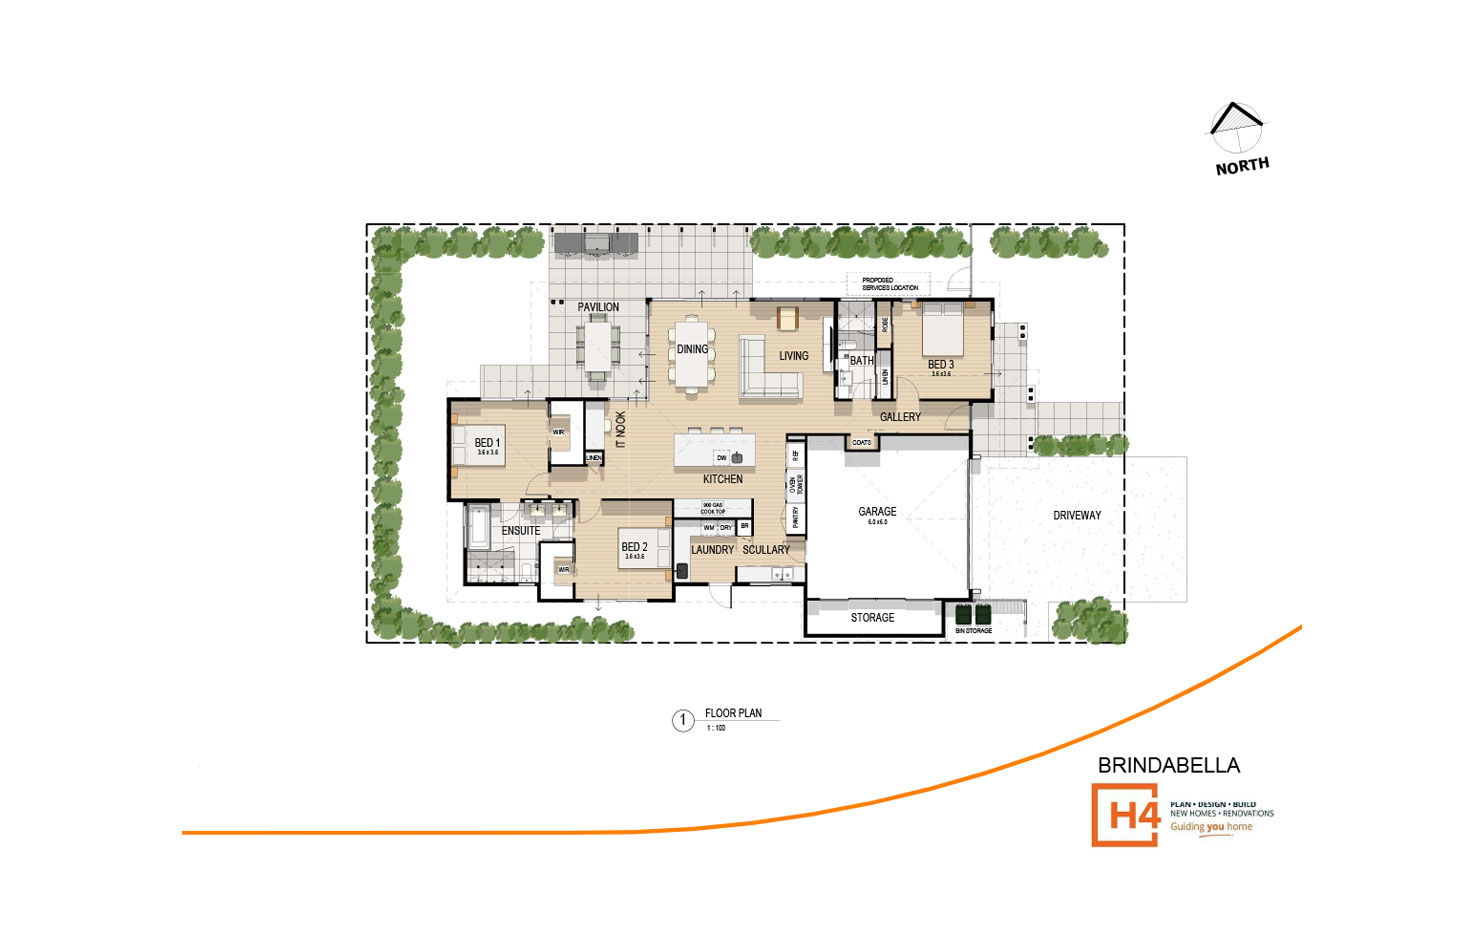 BRINDABELLA-02-FLOOR-PLAN